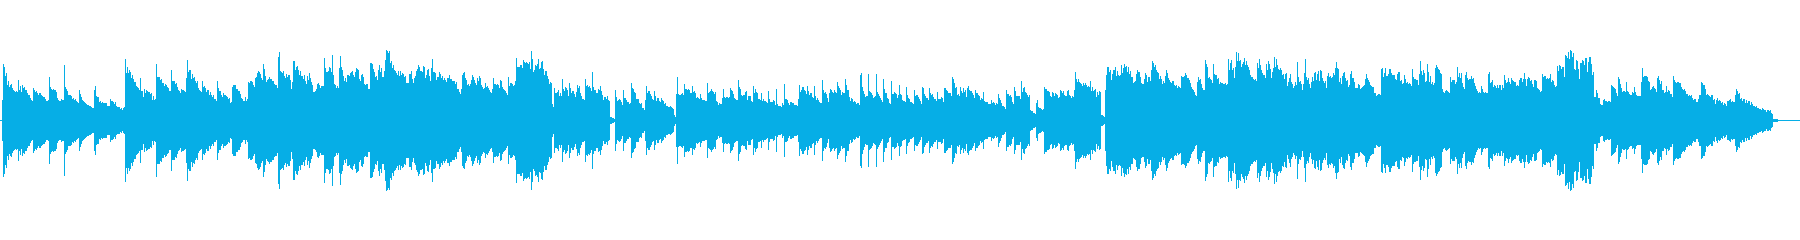 Moist electric piano to sleep 1's reproduced waveform